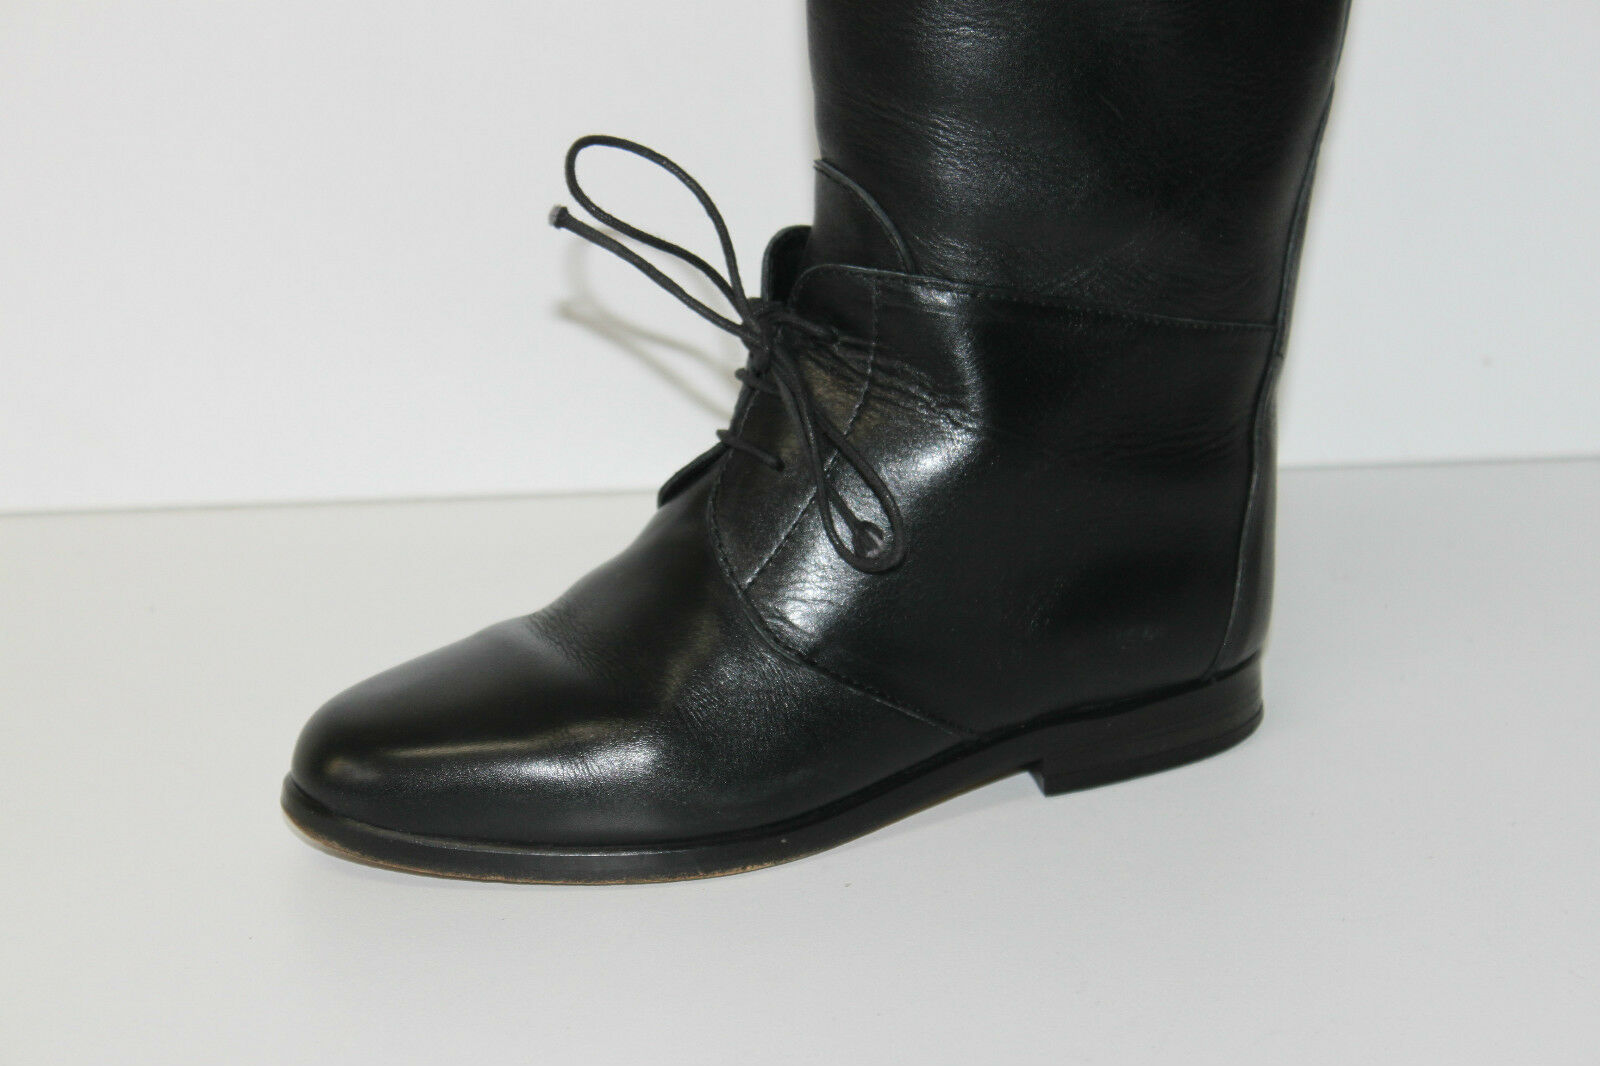 SAGONE Riding Boots Boots Boots All Leather Black T 34 TOP CONDITION dfc7cb